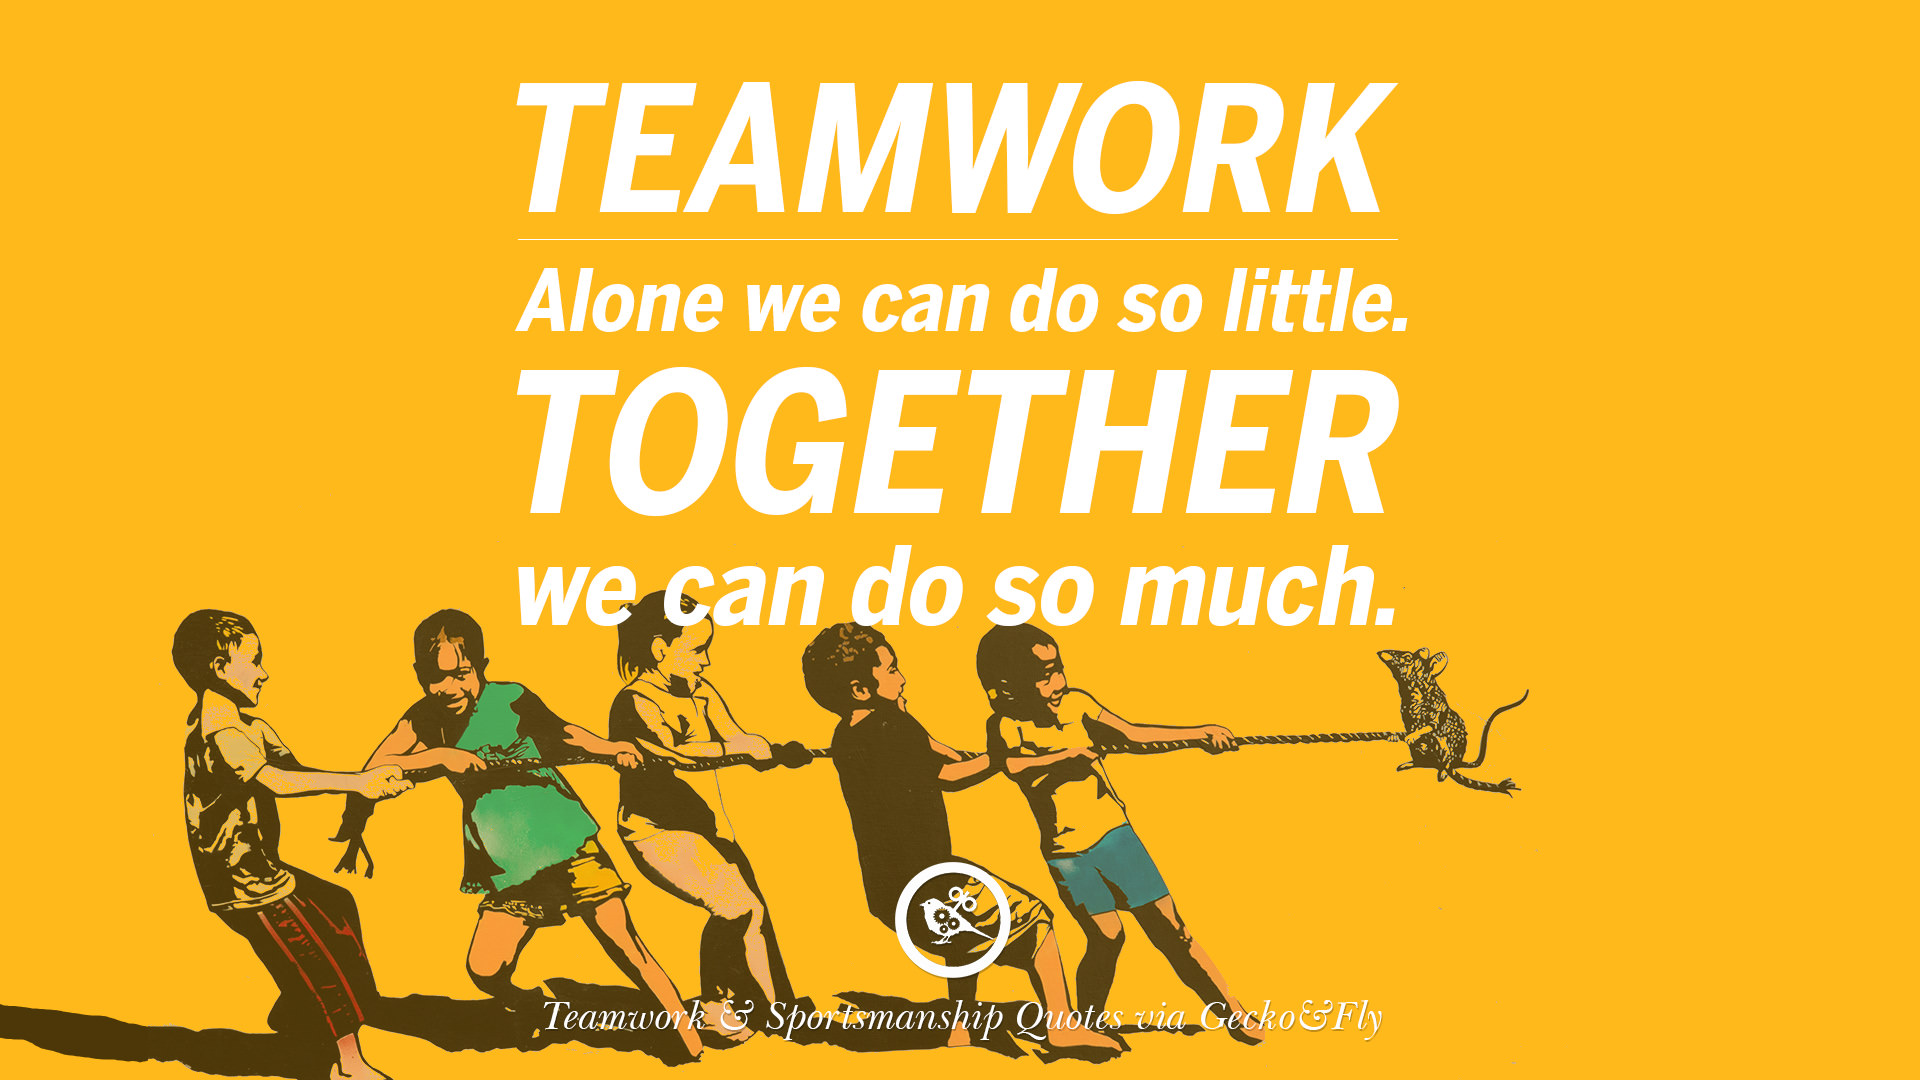 inspirational quotes about teamwork and sportsmanship